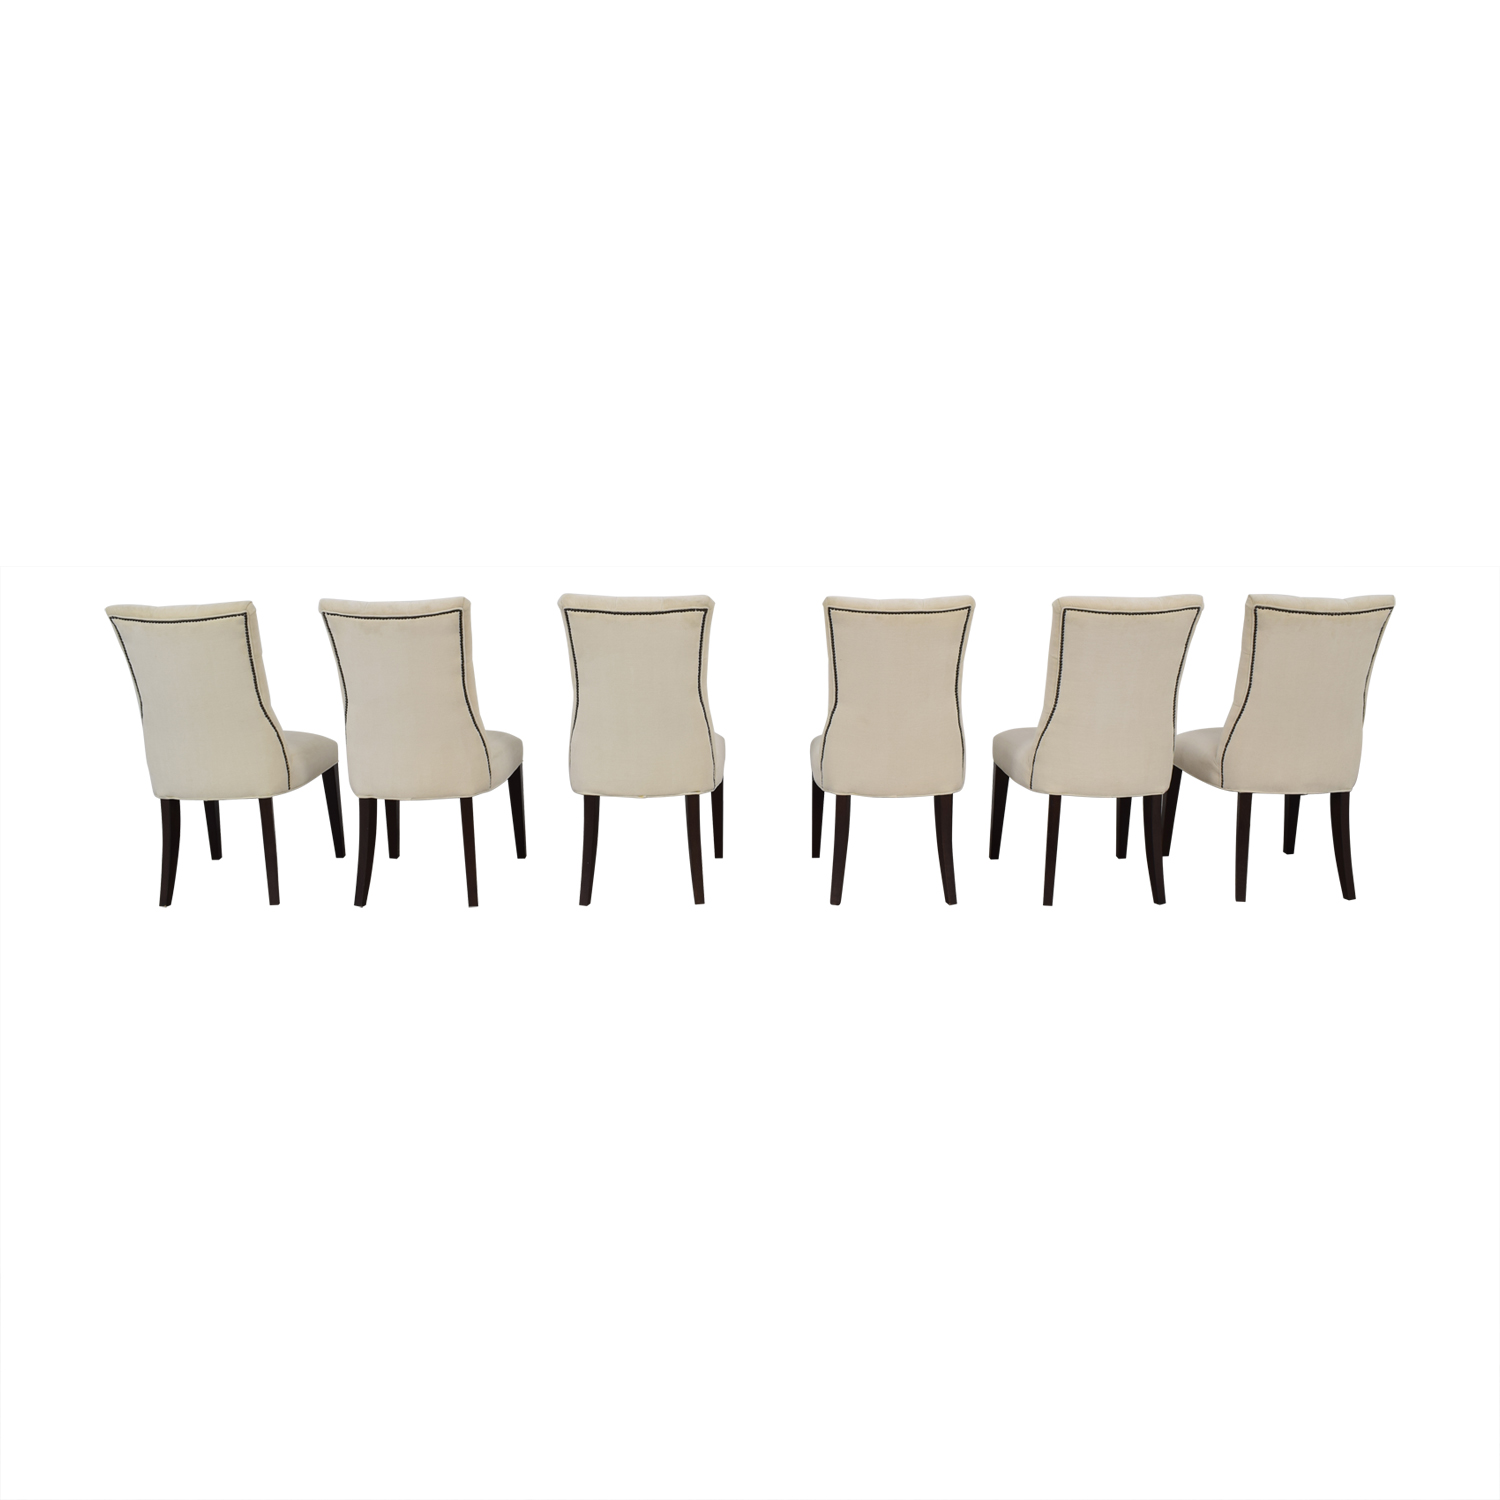 shop Restoration Hardware Restoration Hardware Martine Tufted Beige Dining Chairs online